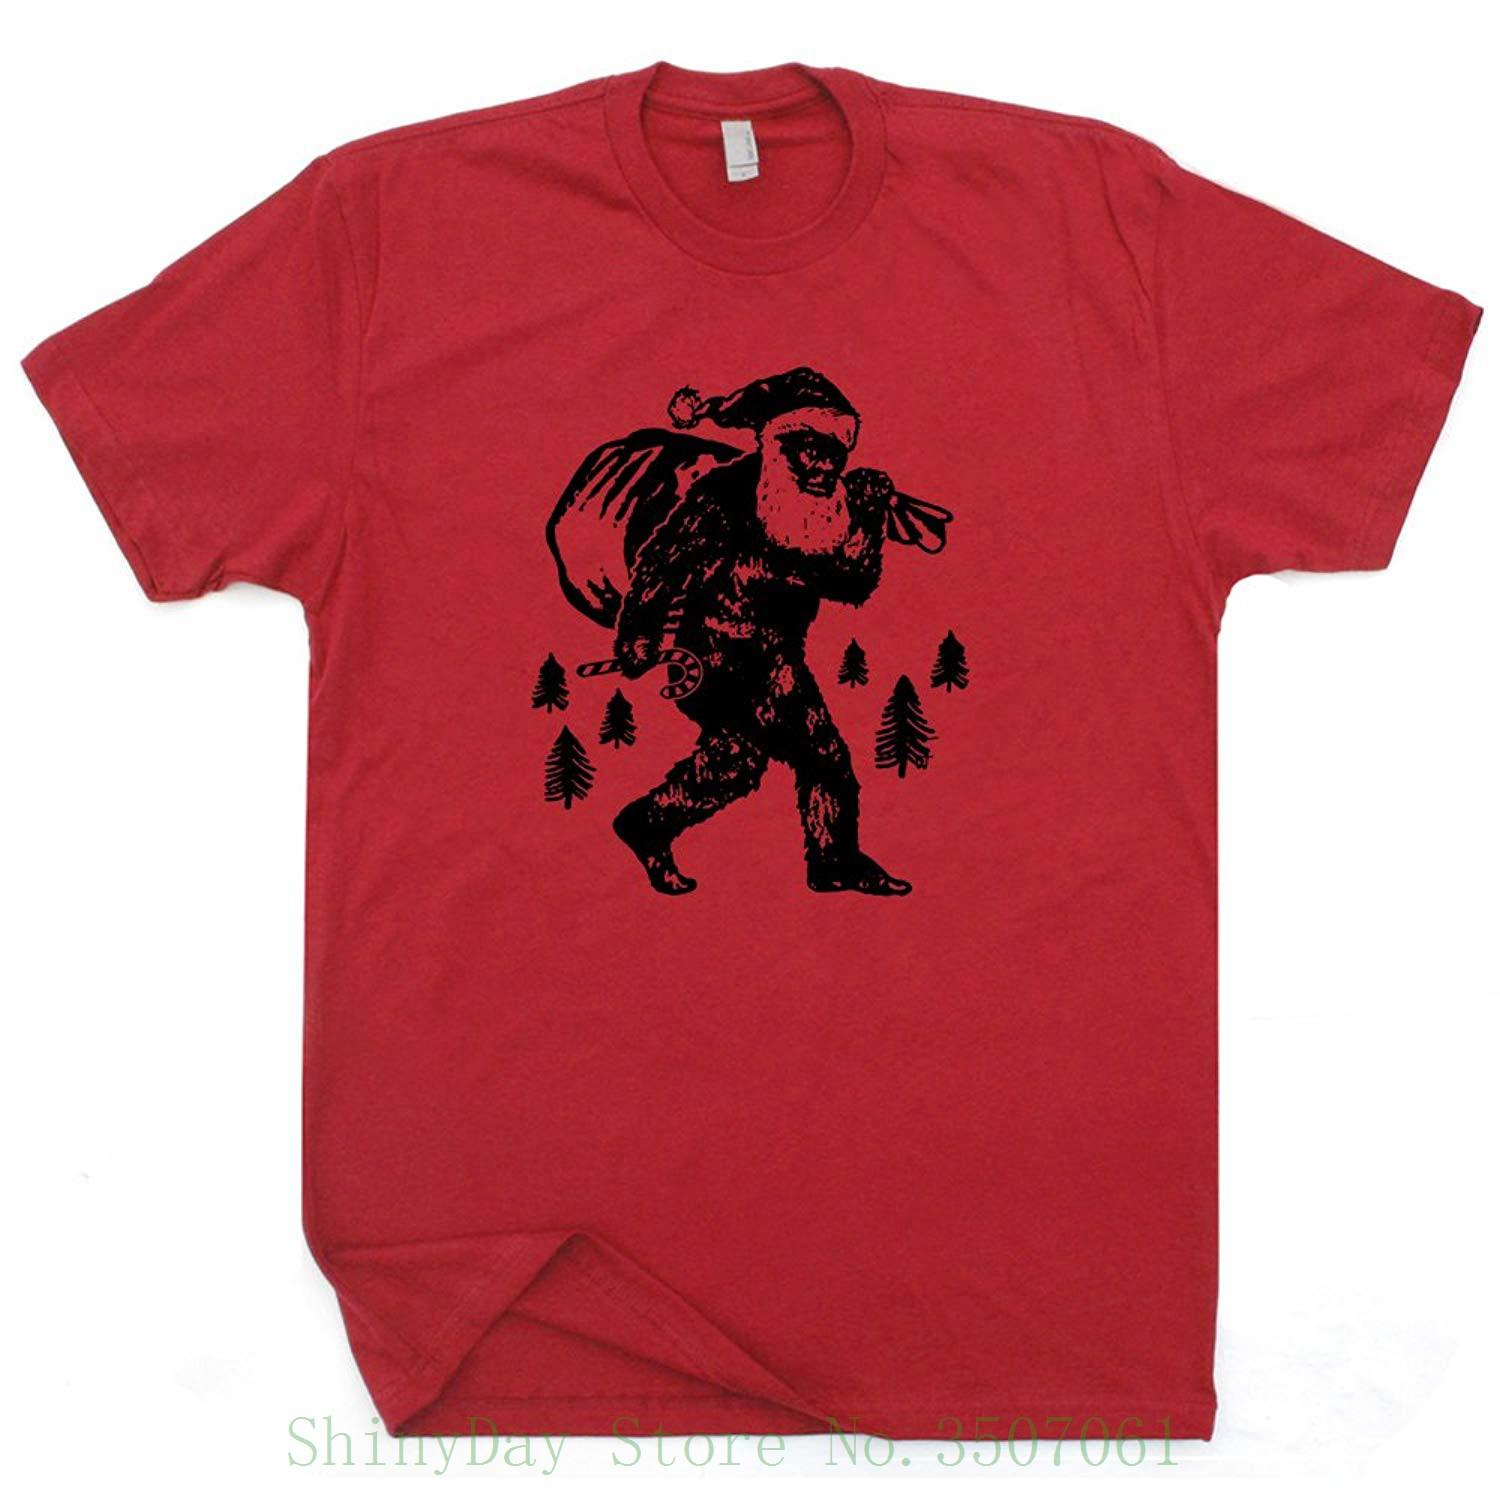 087cd7633 Sasquatch Santa Clause T Shirt Funny Christmas Shirts Bigfoot Tee Vacation  Xmas Tshirt Mens Womens Kids Middle Aged Buy Tee Top T Shirt Sites From ...